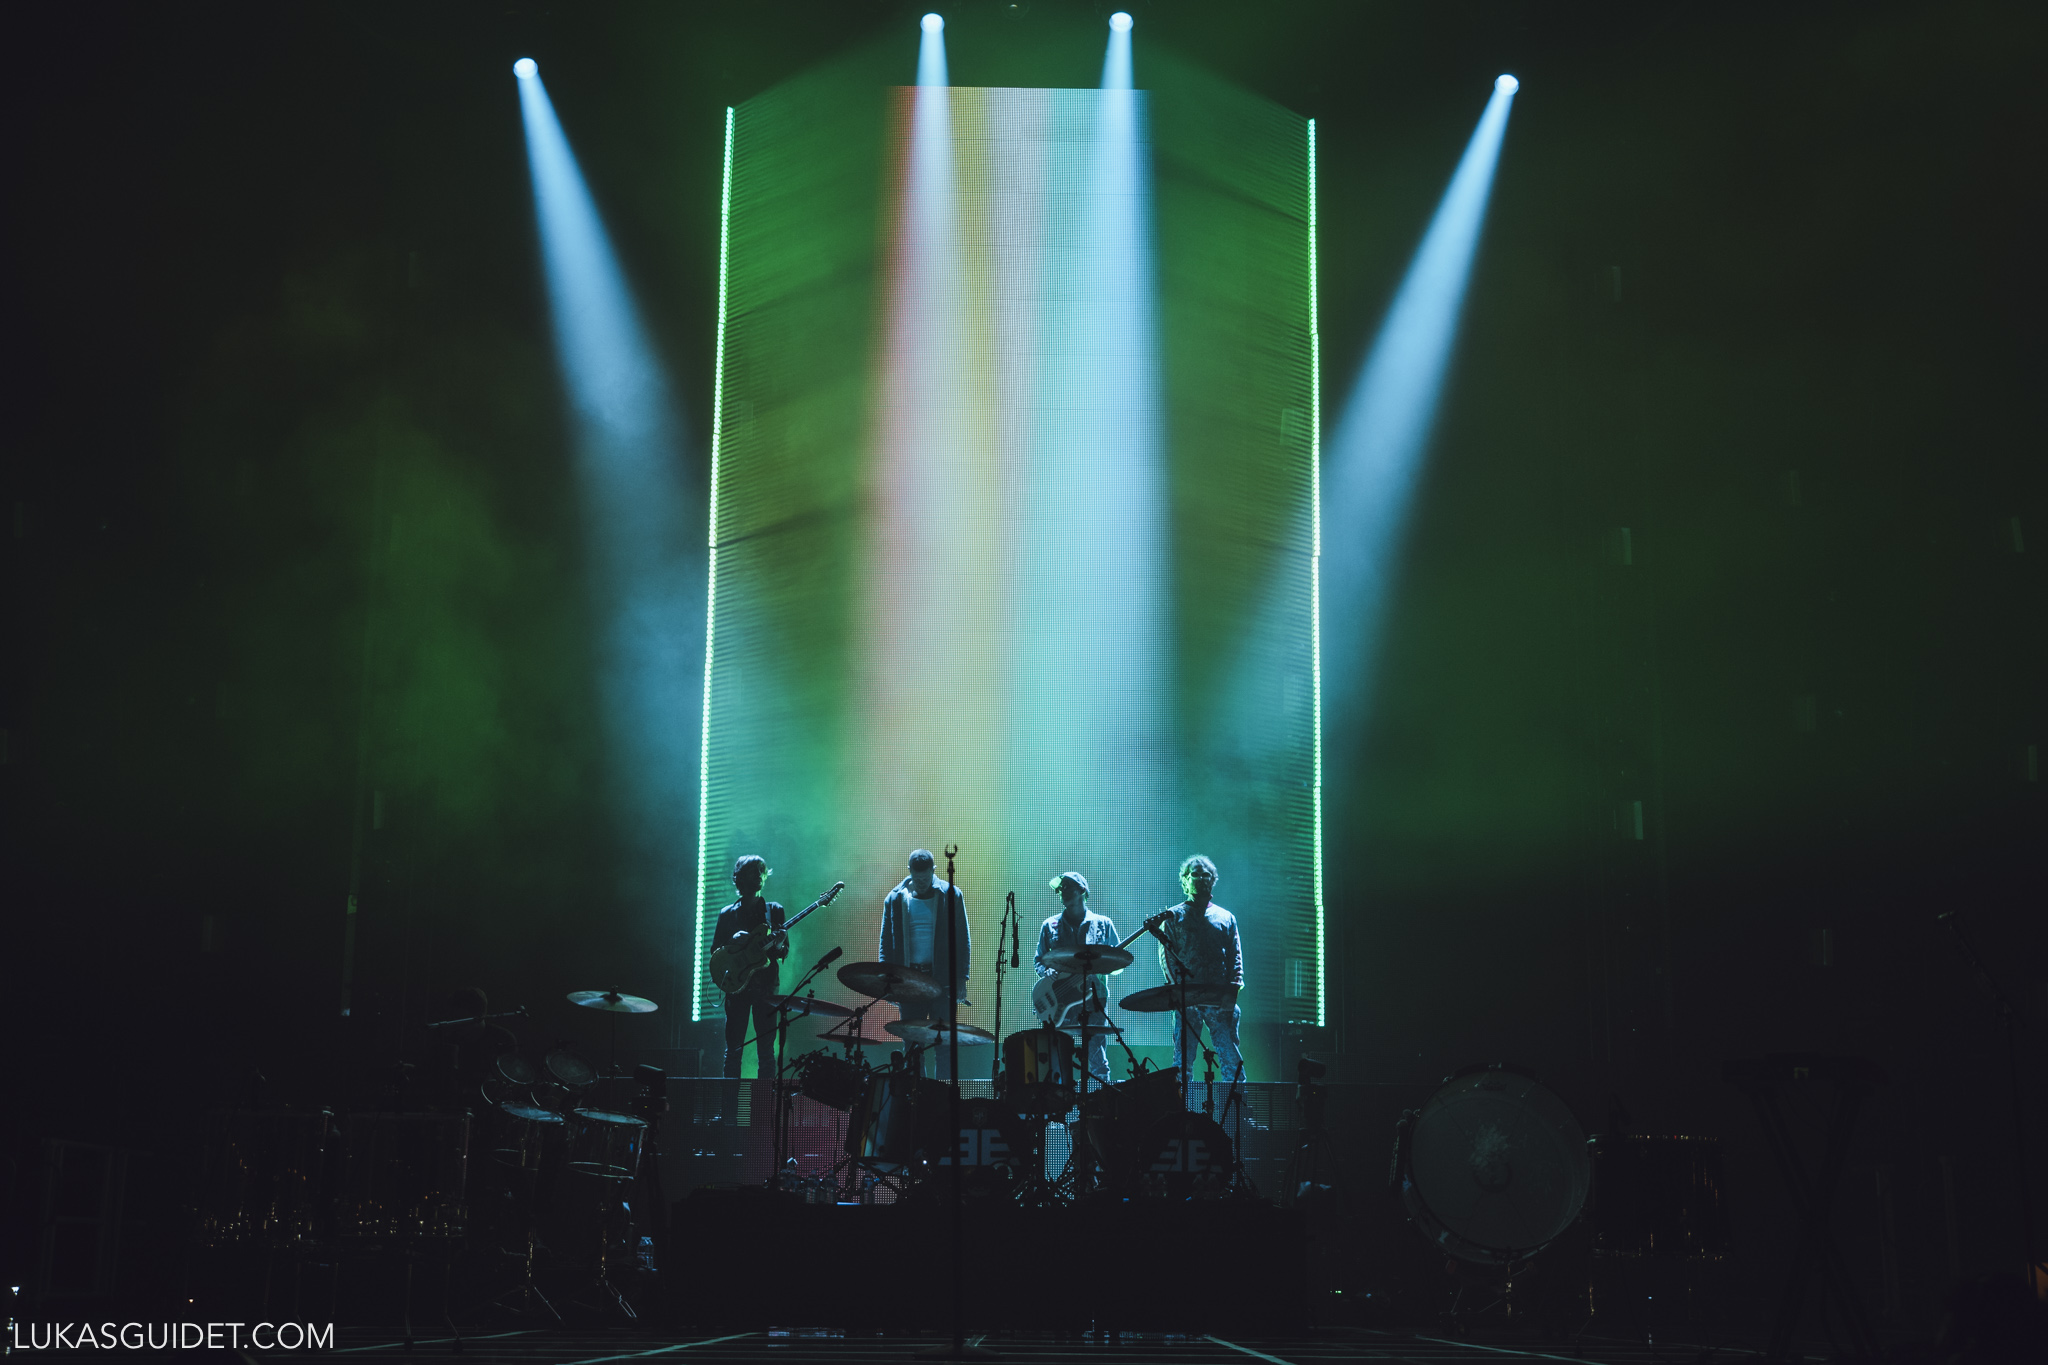 imagine dragons, lyon, 2018, concert, k.flay, rock, evolve